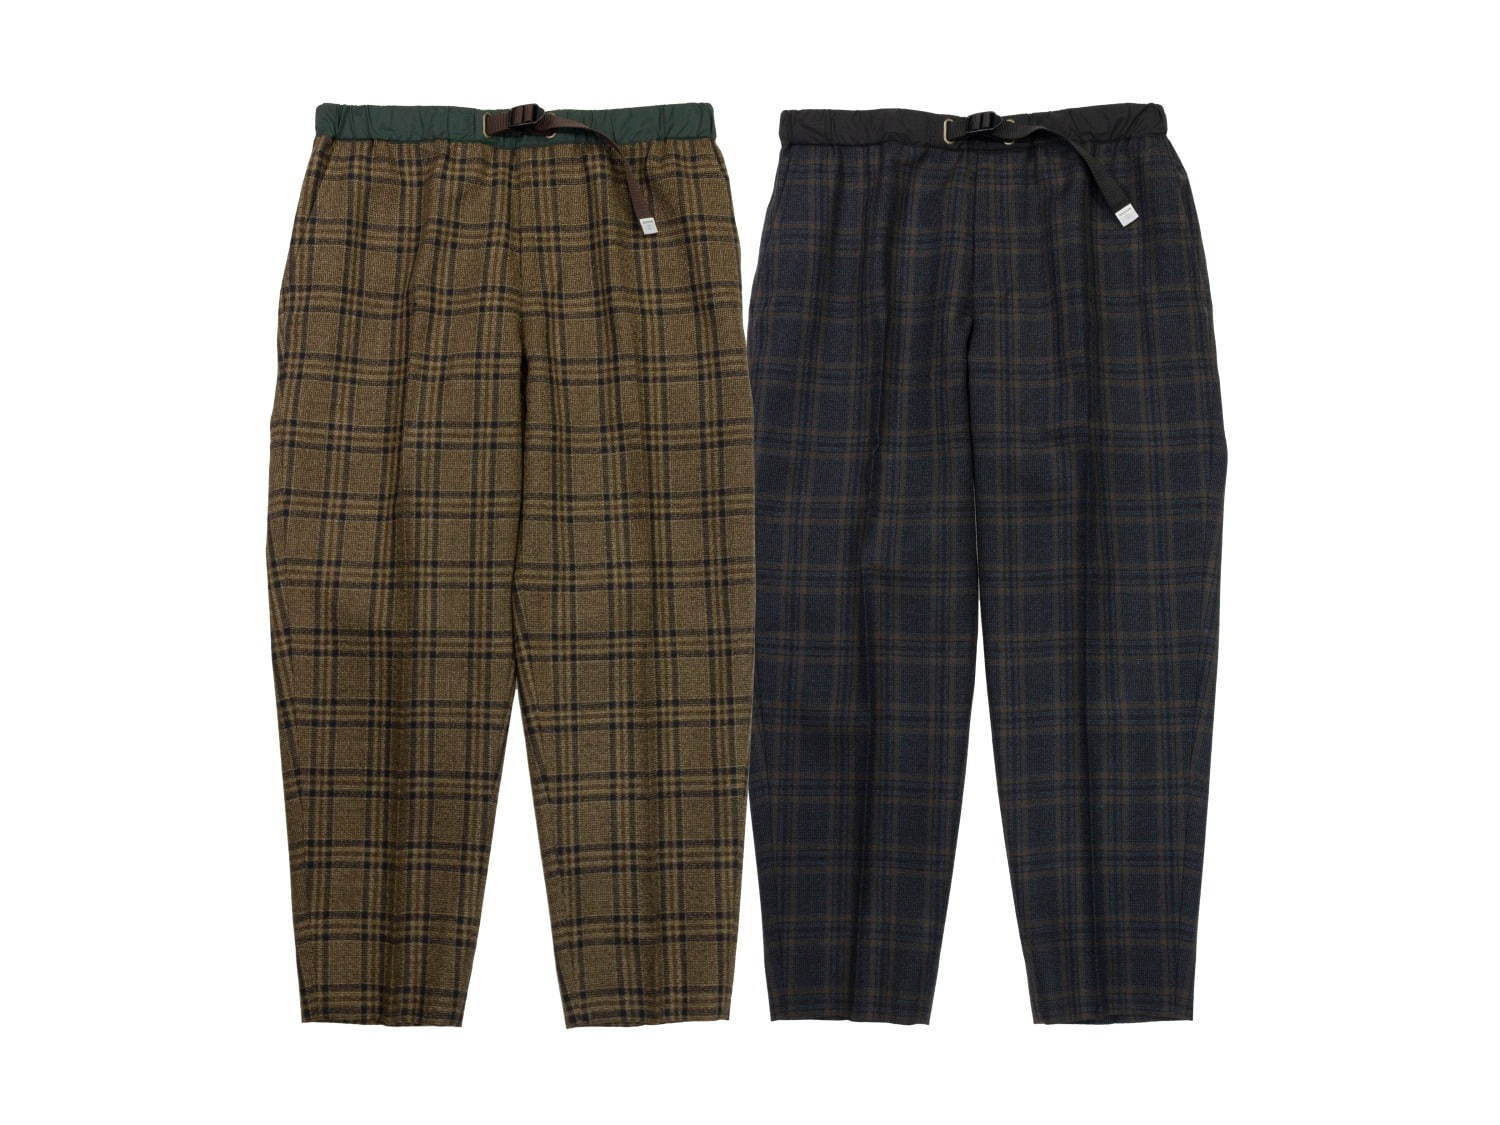 Belted Trousers(メンズ) 46,000円+税